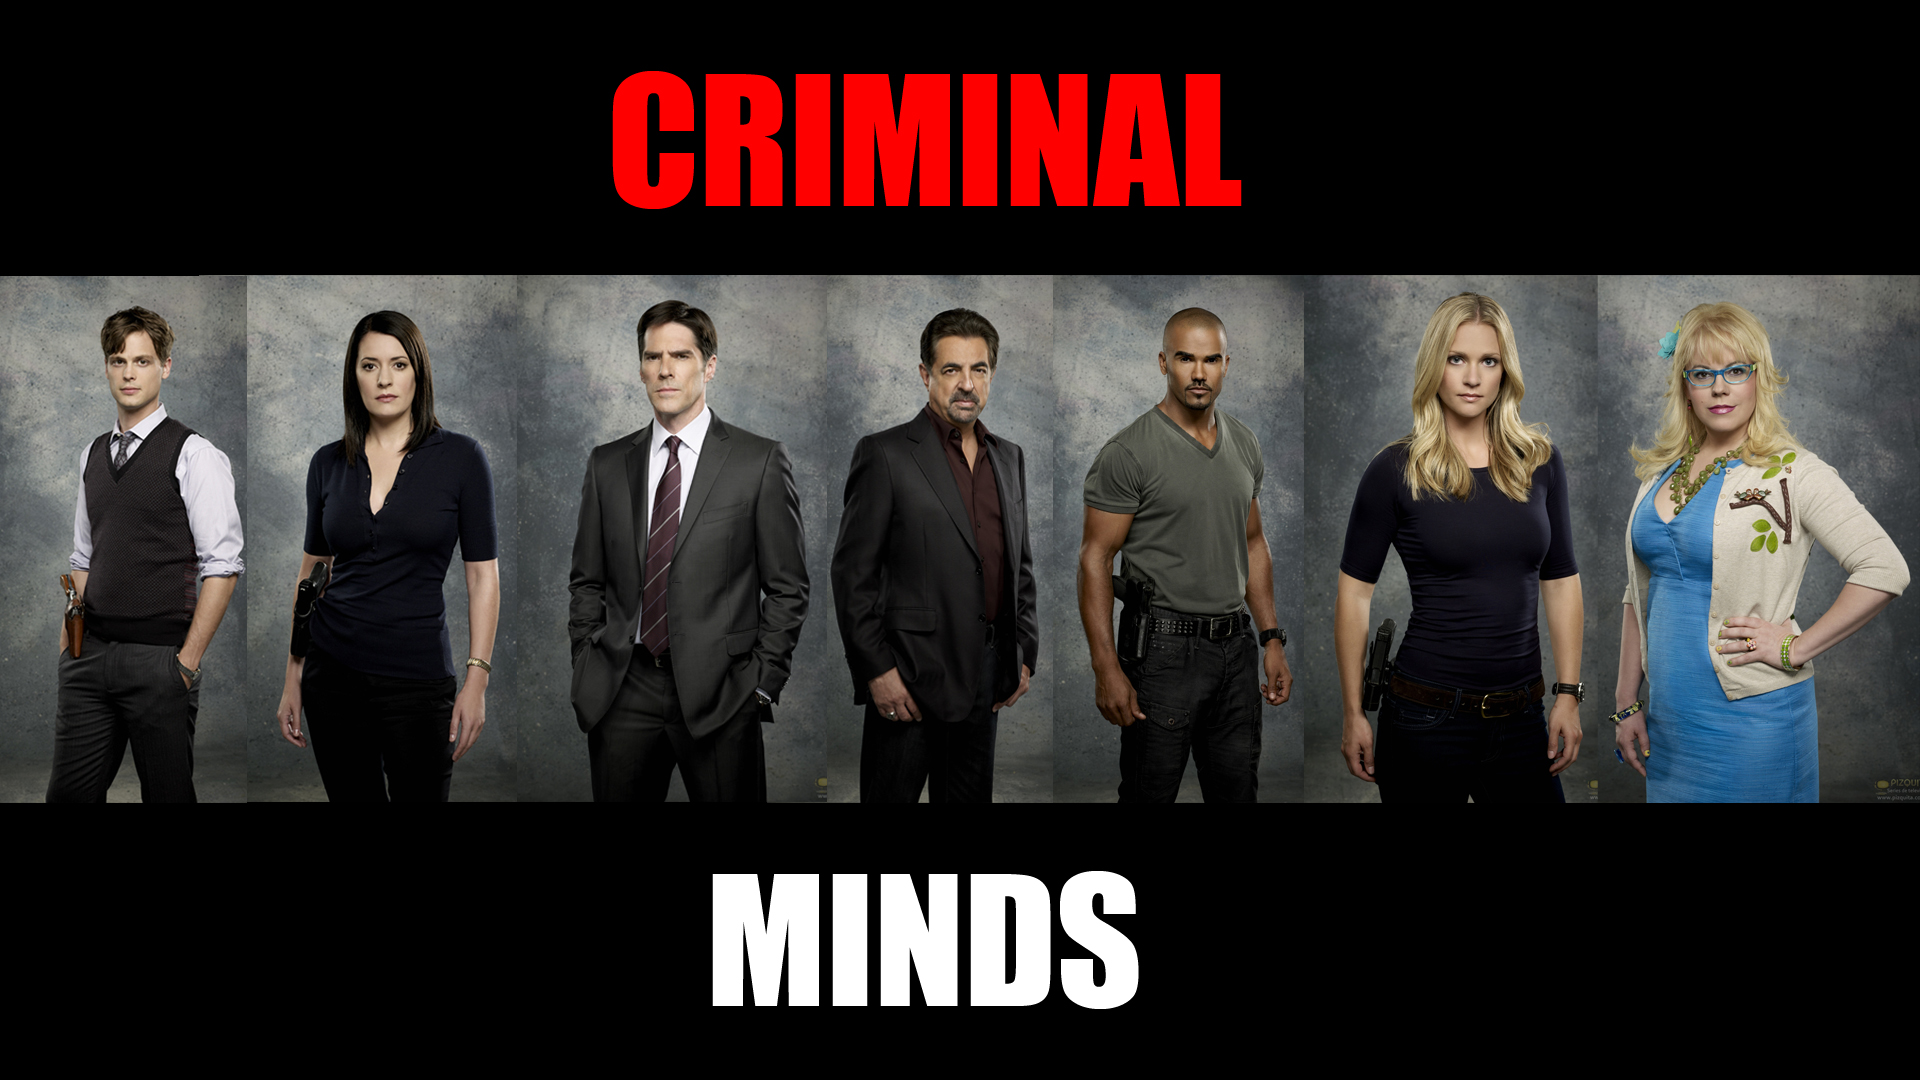 criminal minds Buy criminal minds on google play, then watch on your pc, android, or ios devices download to watch offline and even view it on a big screen using chromecast.